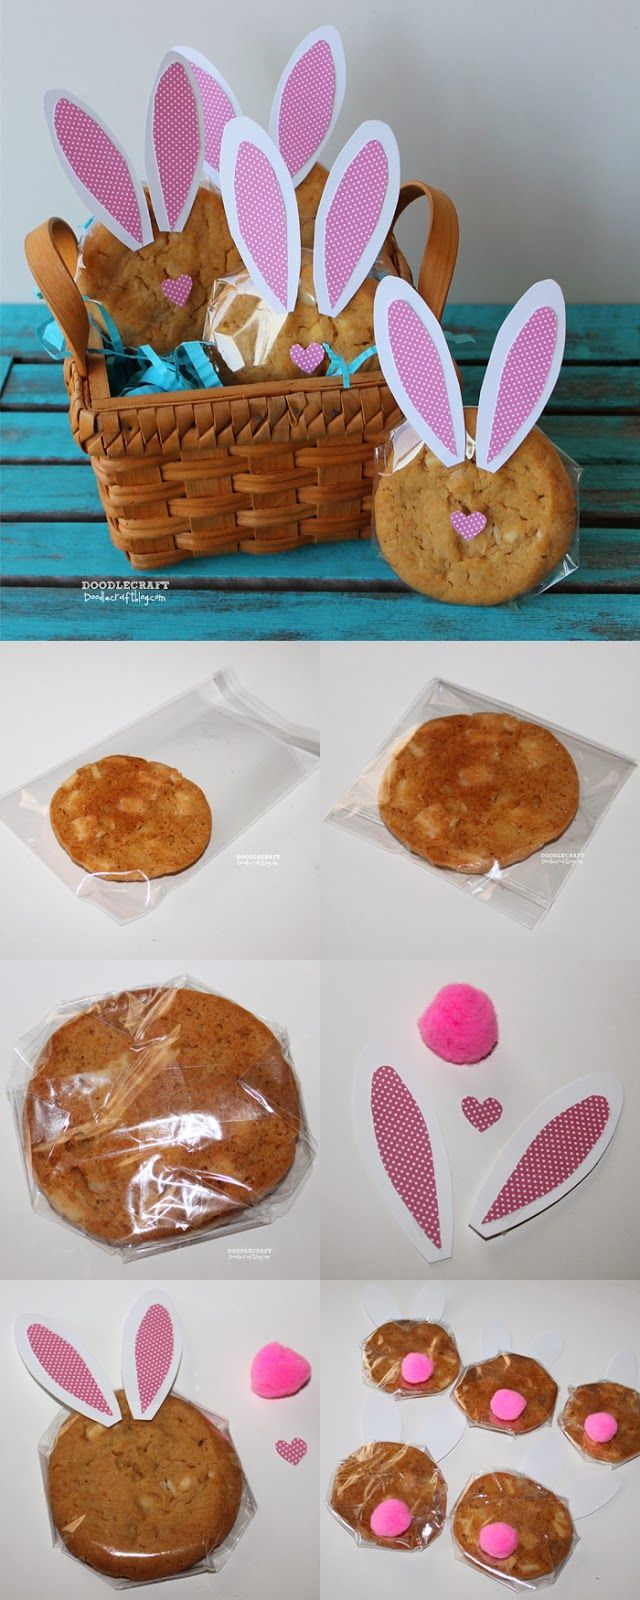 193 best easter giftstreats images on pinterest hoppy easter cookies bunny ear cutouts a basket cellophane and a fuzzy tail and youre all set for easter thanks doodlecraft negle Image collections